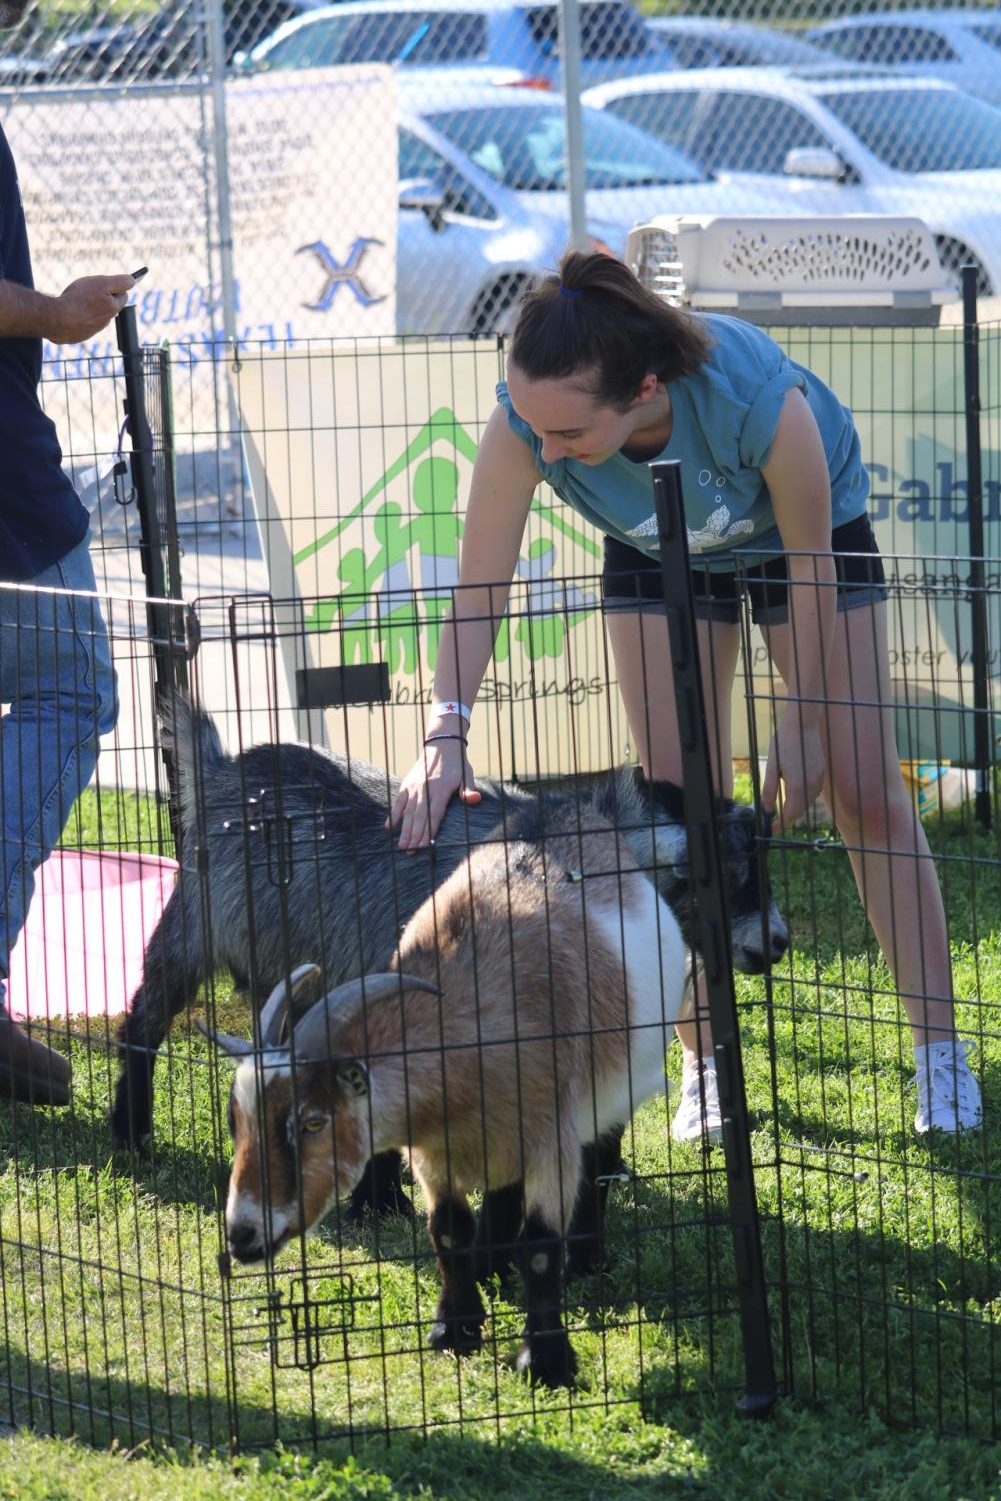 Florie+Sambuis+%2720+gently+pets+a+goat+in+the+petting+zoo.+